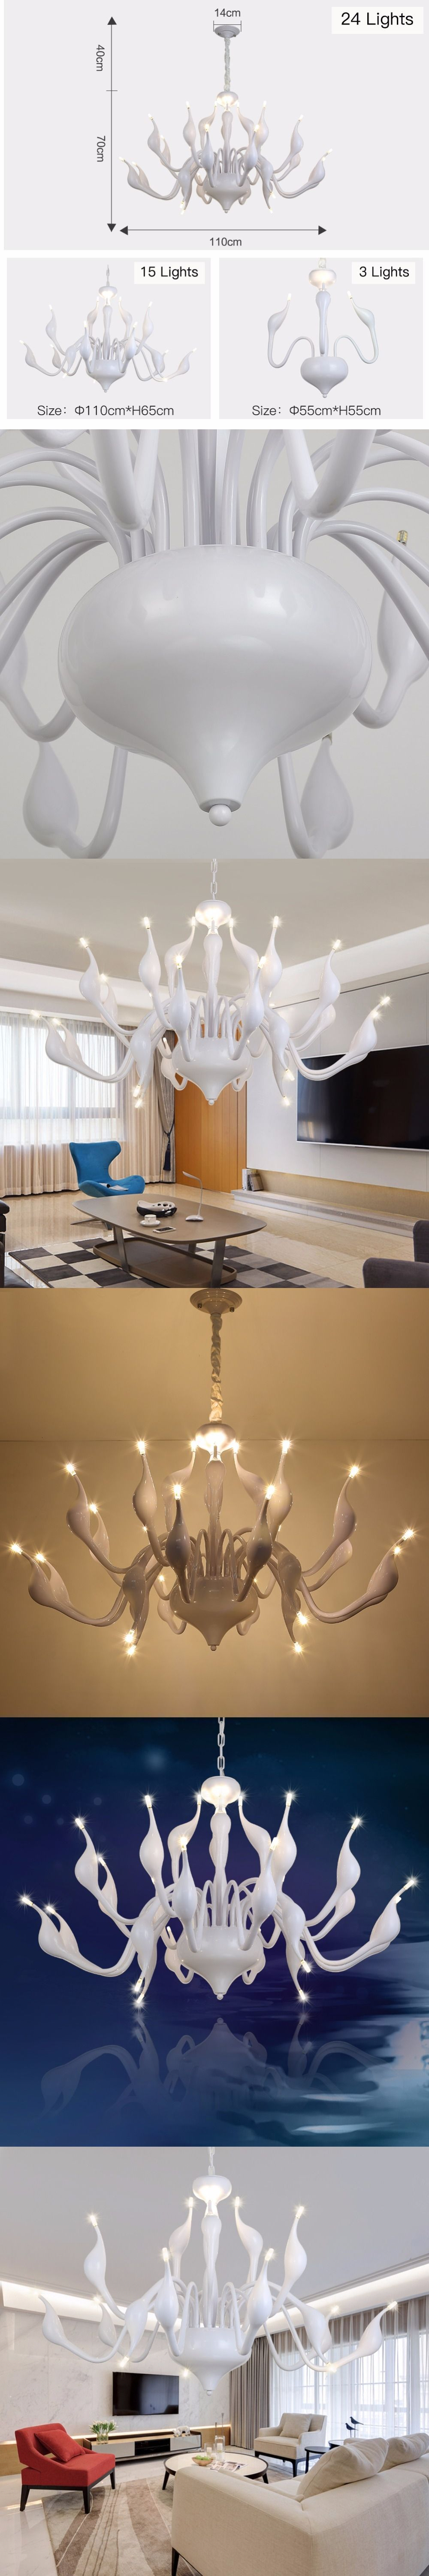 Lustre Led Lamp Chandelier Lighting Lamparas De Techo Colgantes